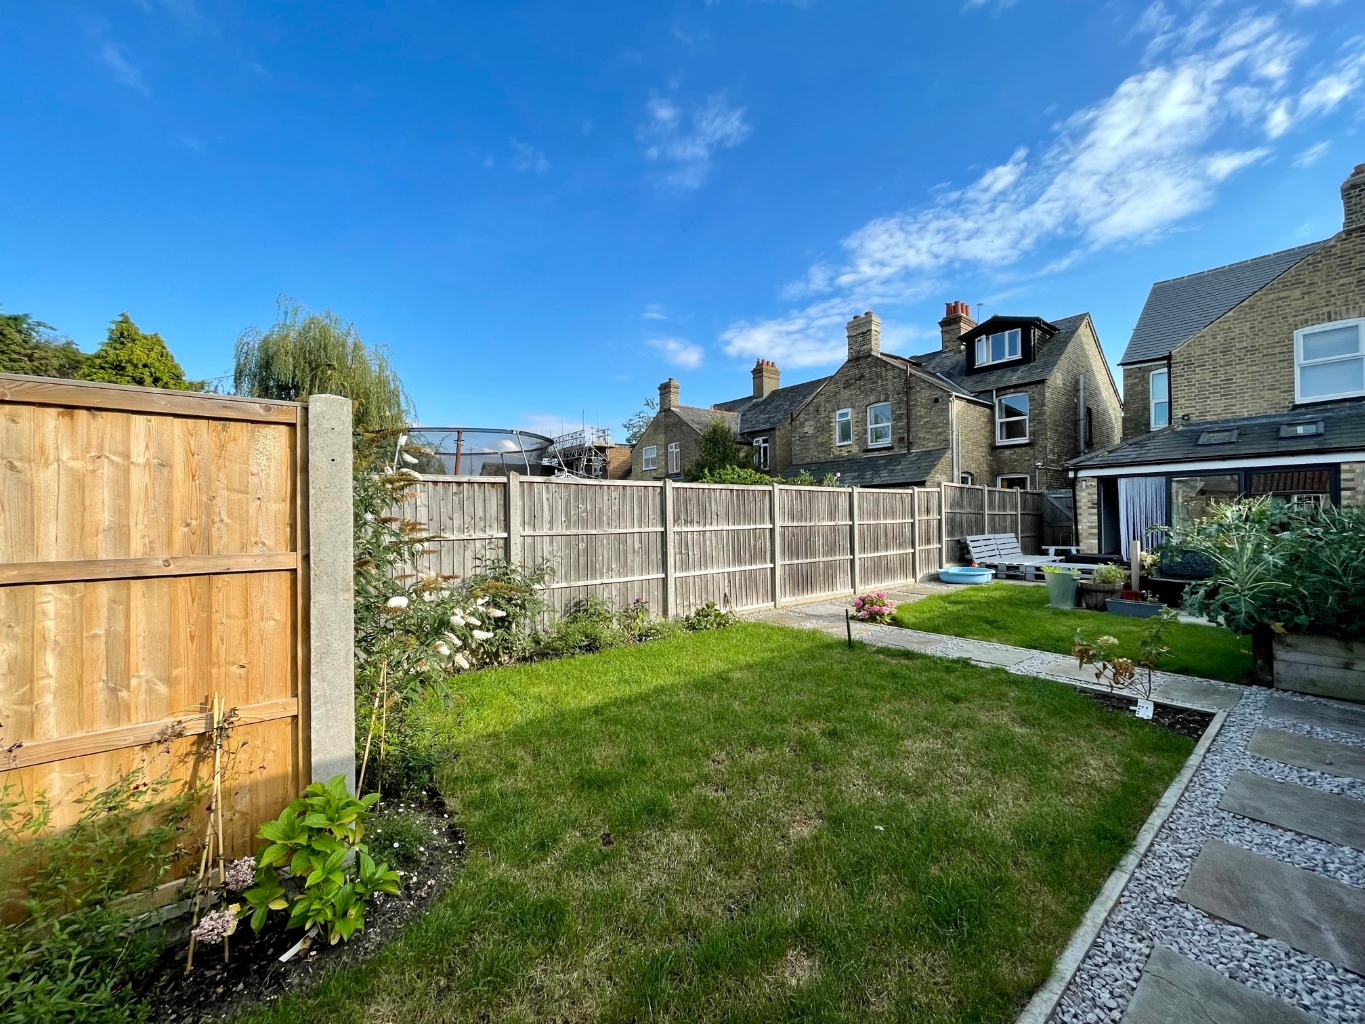 3 bed semi-detached house for sale in Rycroft Avenue, St. Neots  - Property Image 14